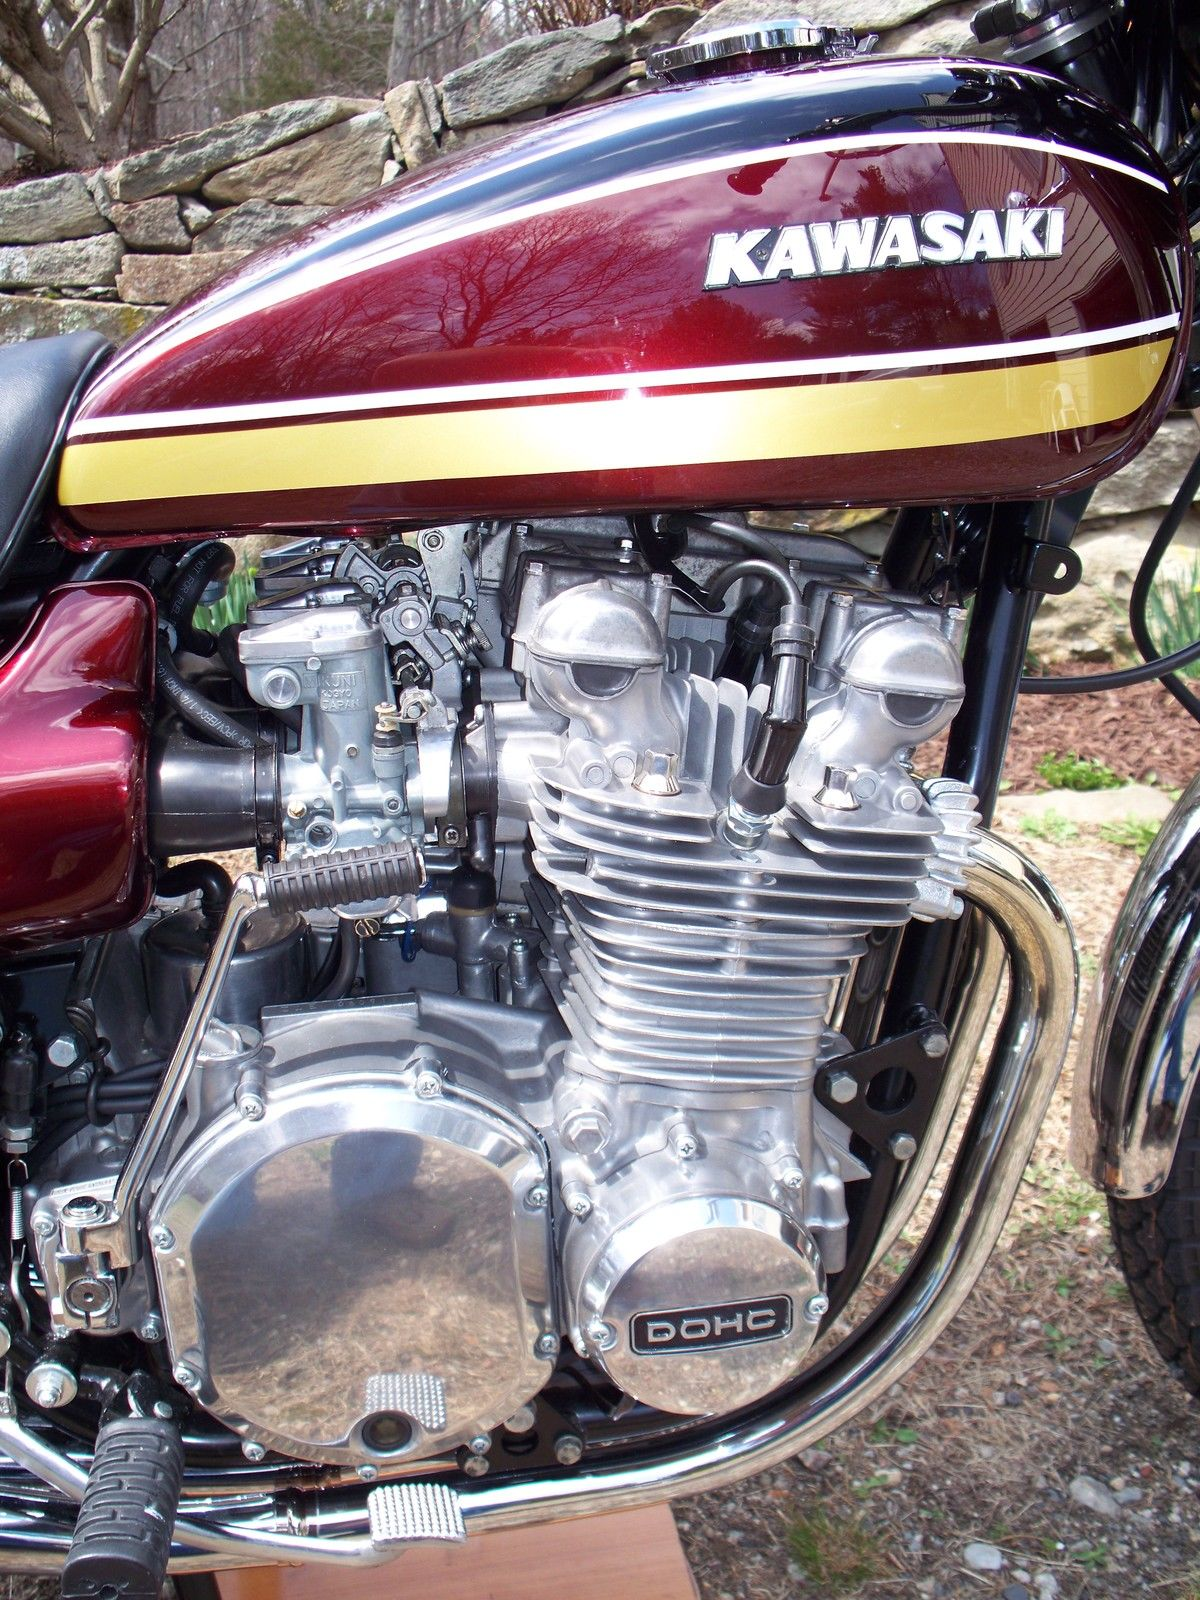 Kawasaki Z1 - 1975 - Kick Start, Clutch Cover, Points Cover, Cam Cover and Airbox.